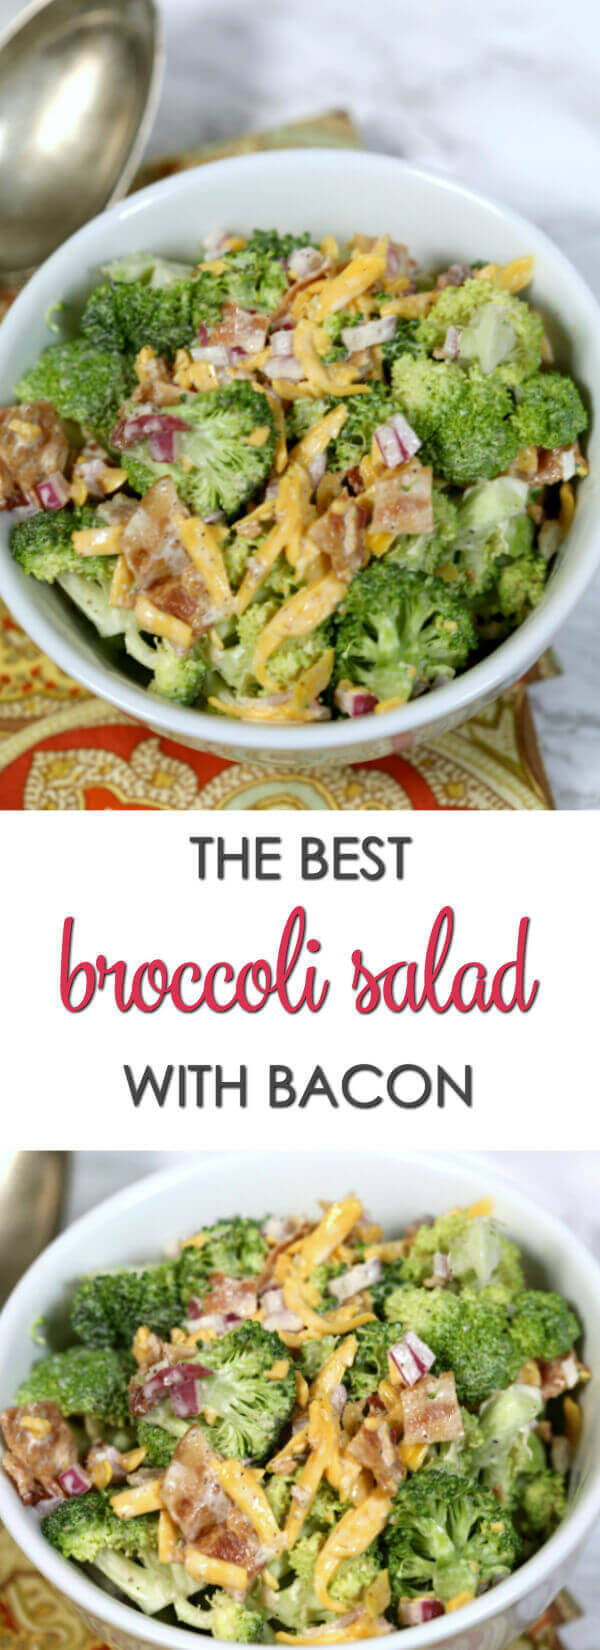 Broccoli Salad with Bacon and Cheese - this is one of the best easy salad recipes